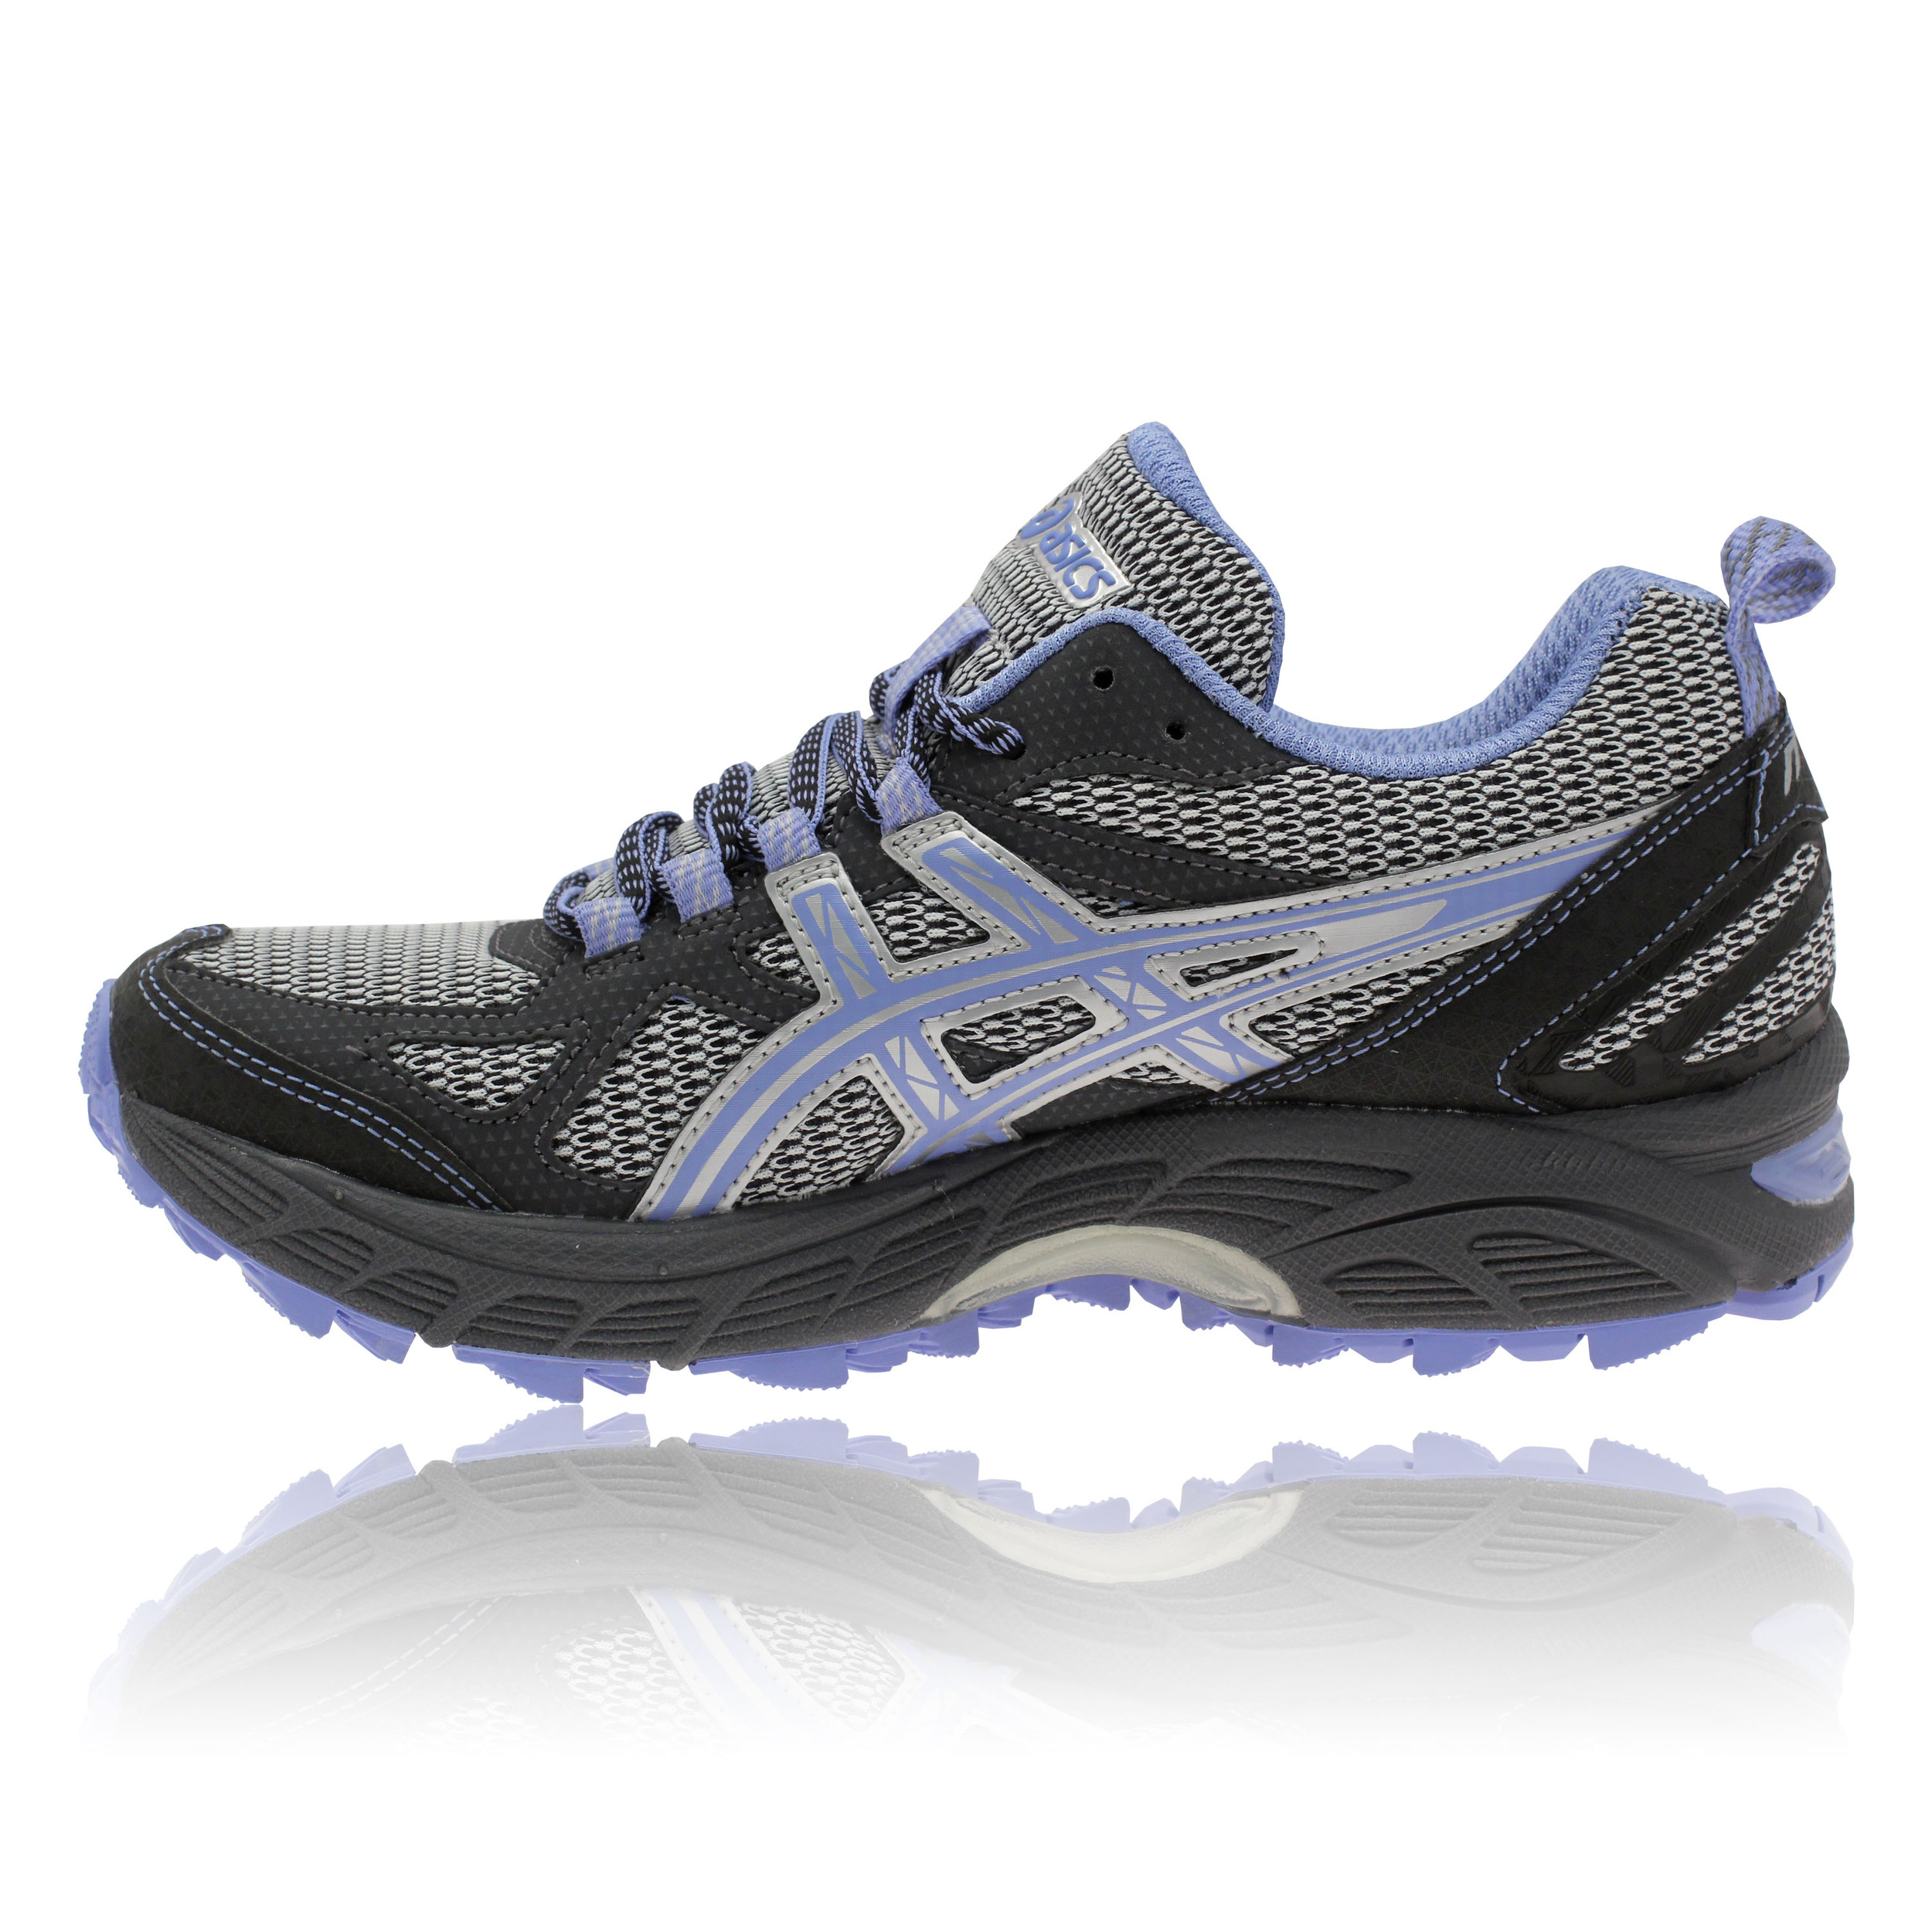 Most Cushioned Running Shoes Uk